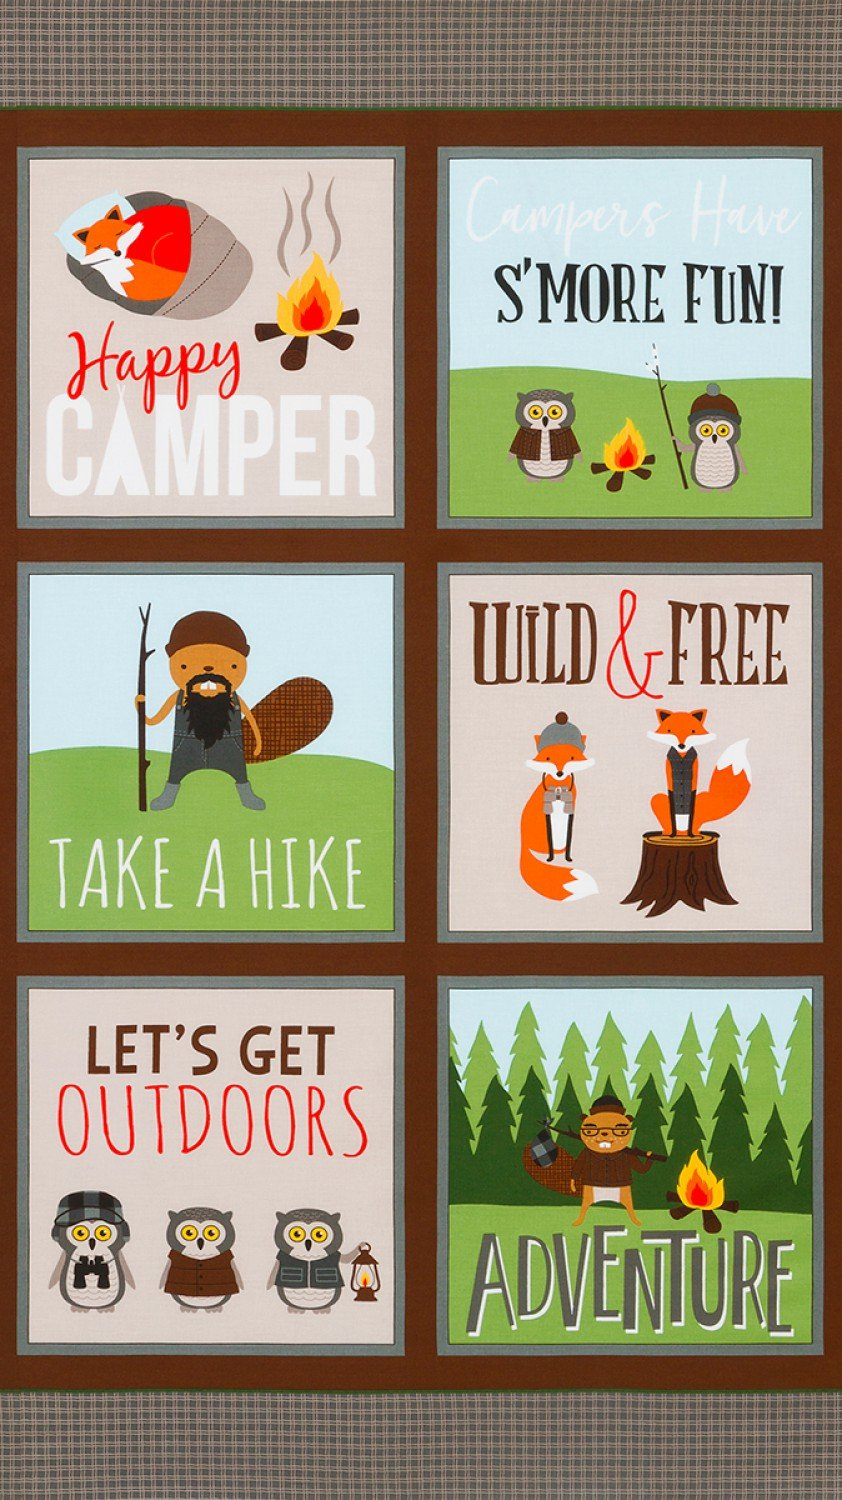 Campsite Critters - AHE-17624-169